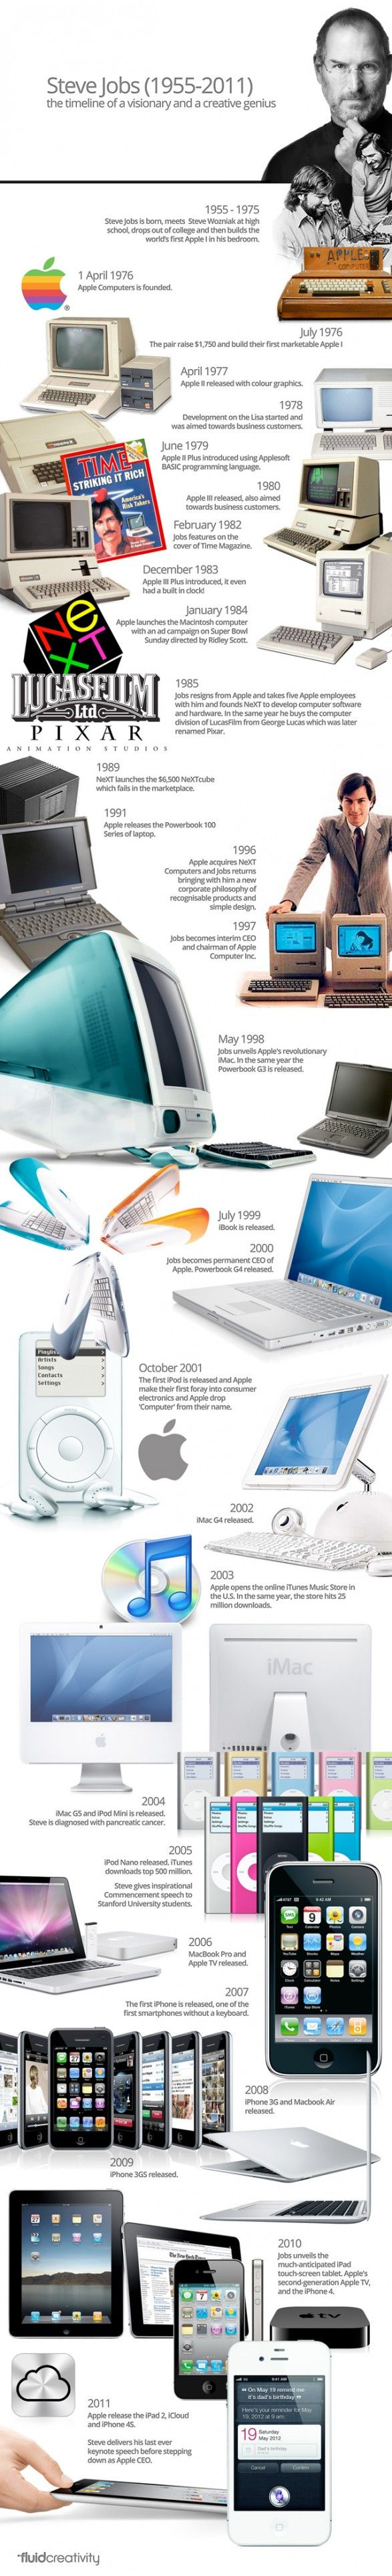 #SteveJobs (1955-2011): The Timeline of a Visionary and a Creative Genius | #Apple #Infographic